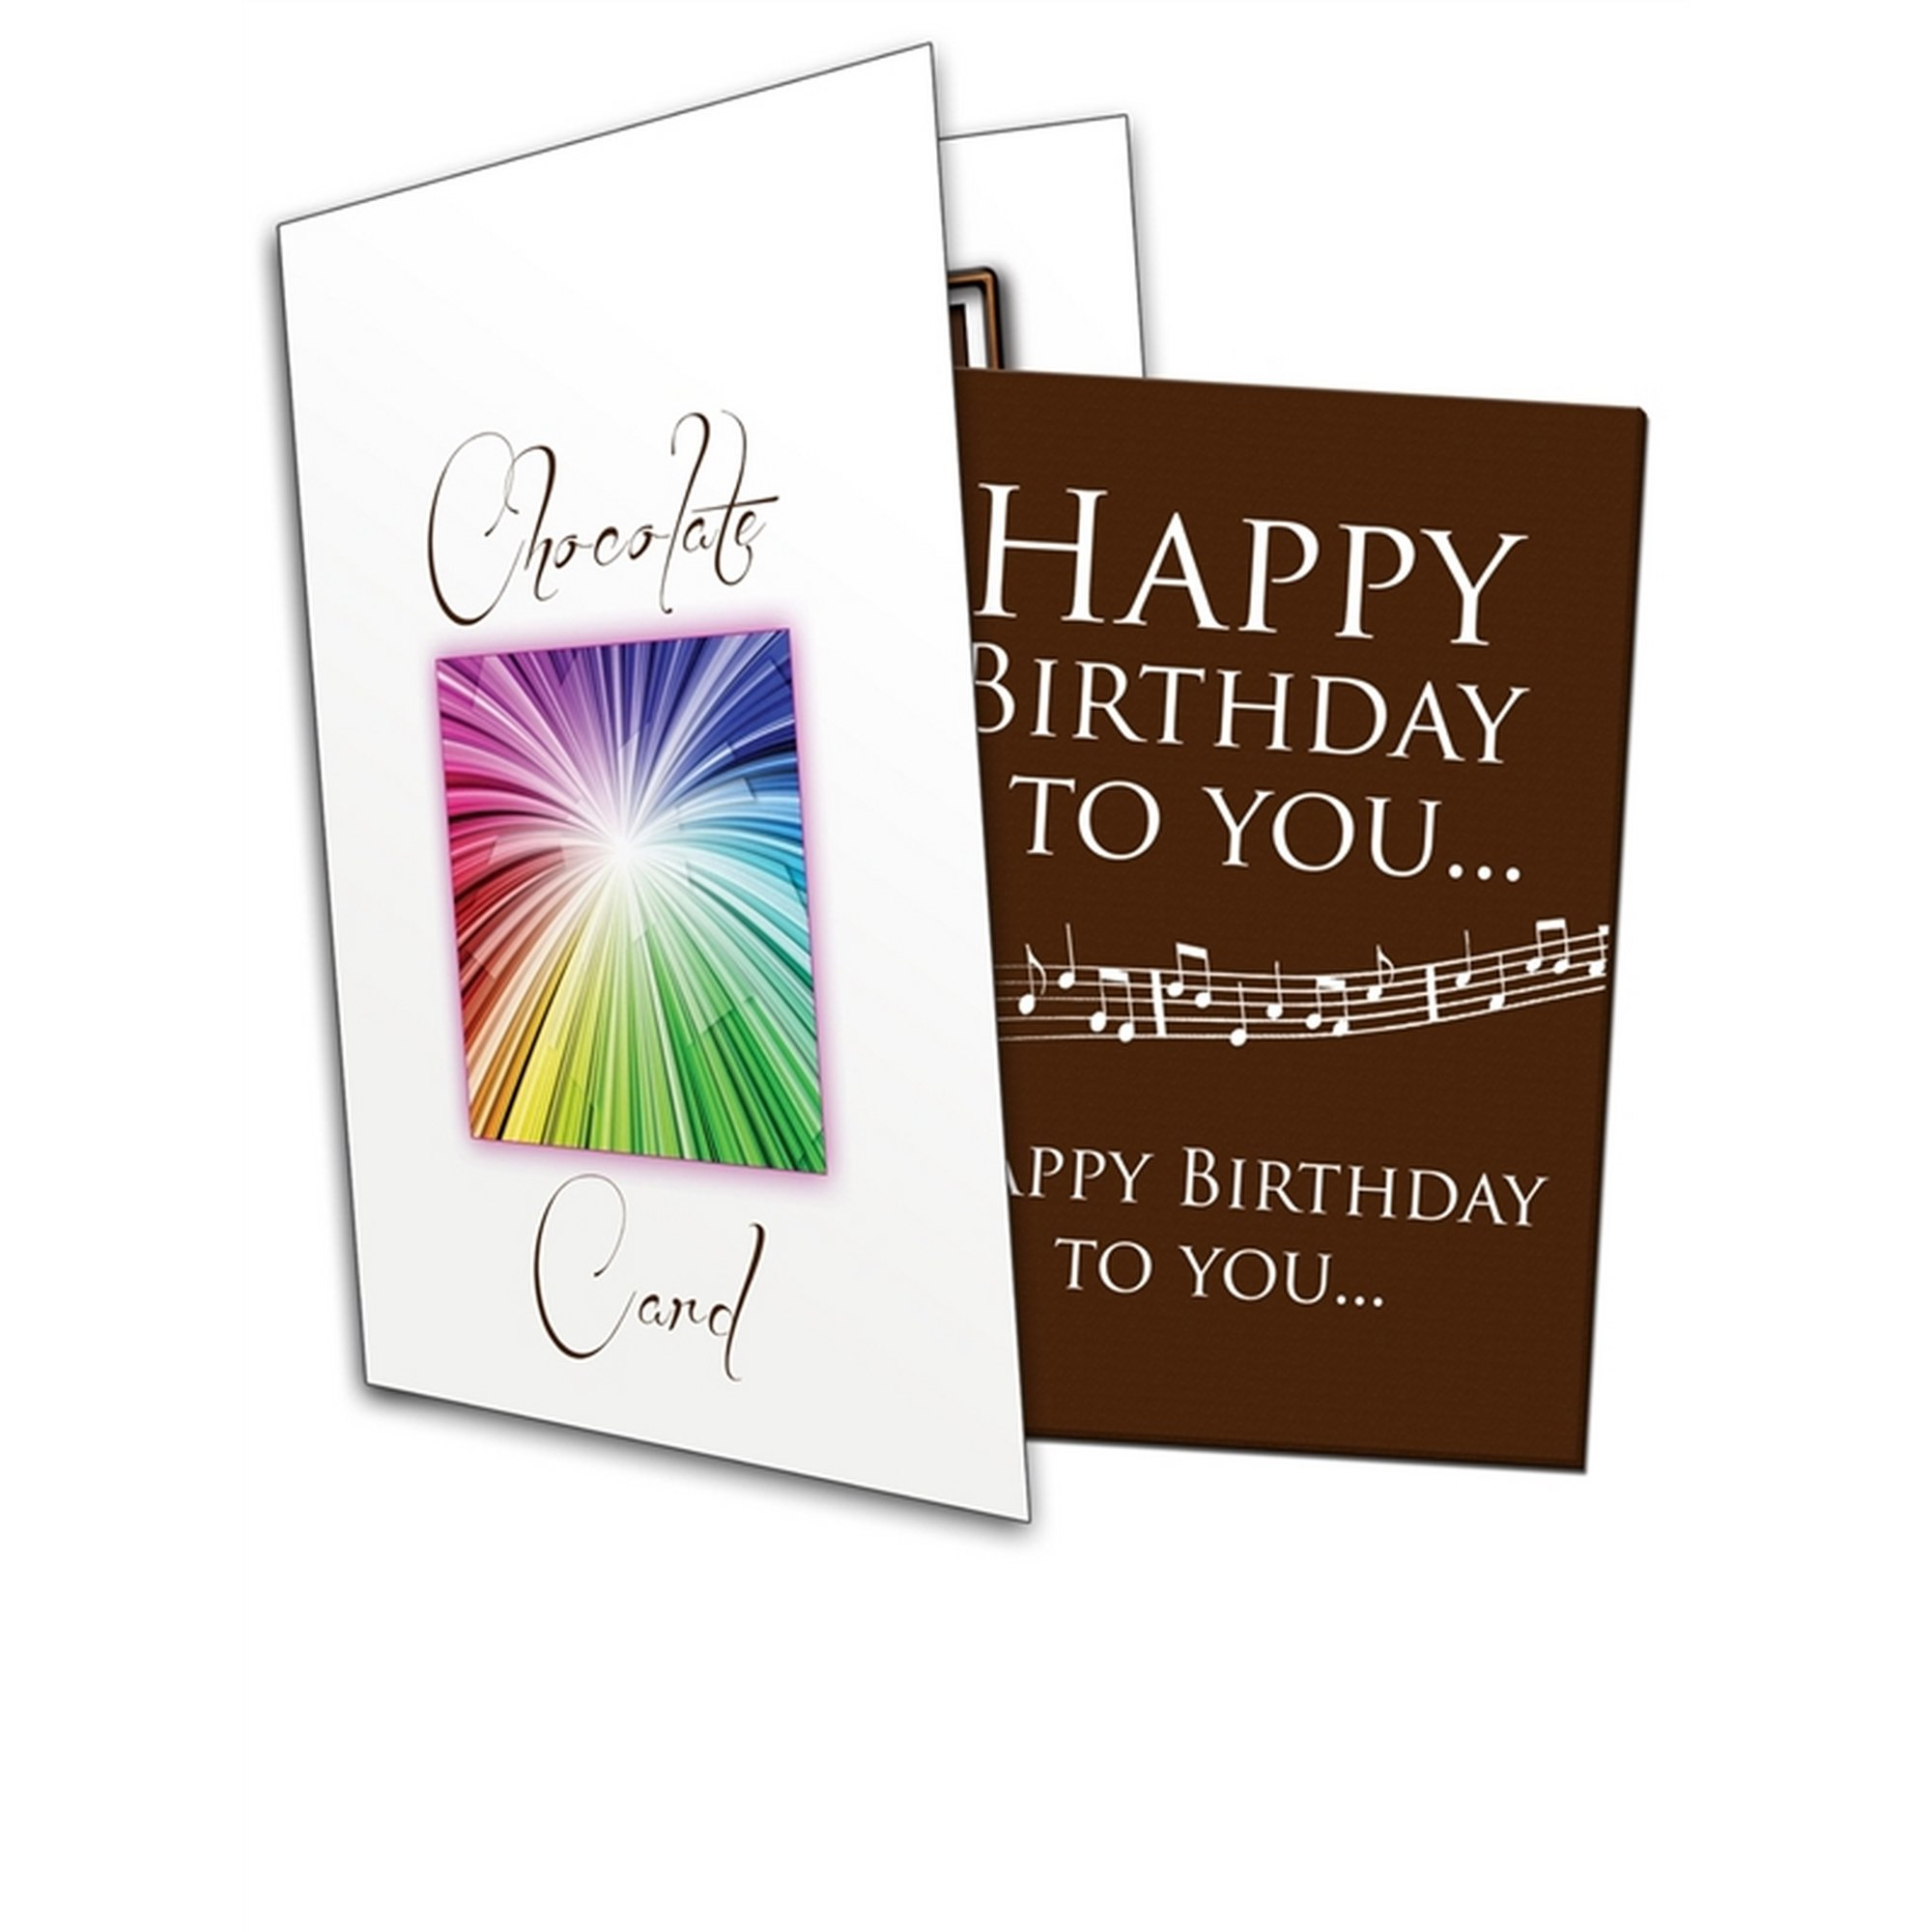 Image of Happy Birthday To You Chocolate Greetings Card